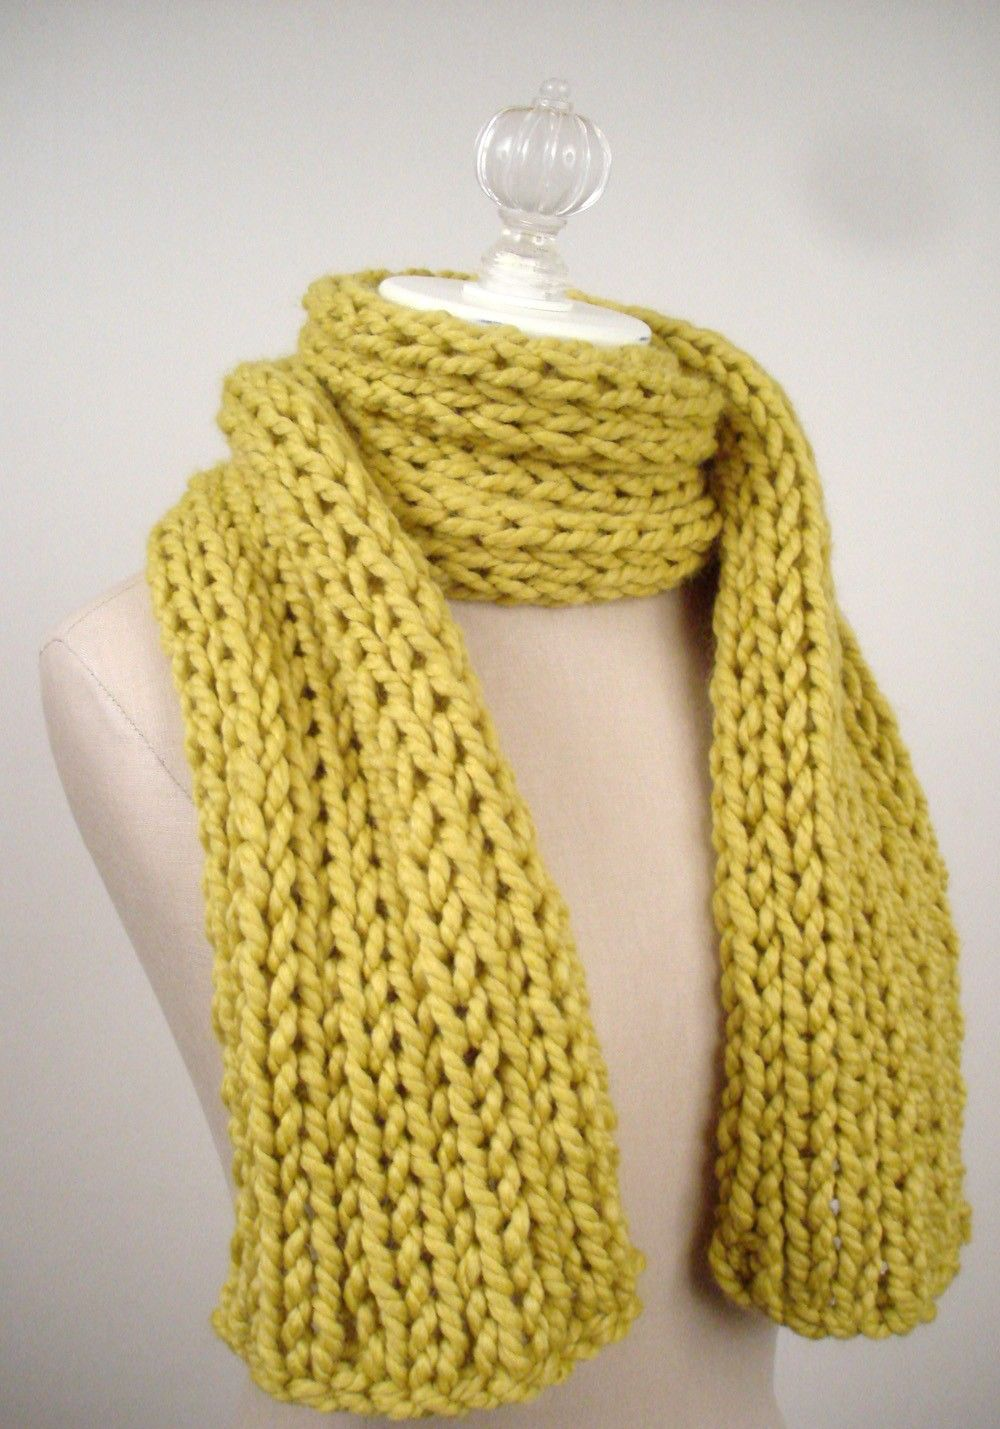 Easy Knitting Patterns Instructions : Beginner knitting instructions scarf pattern